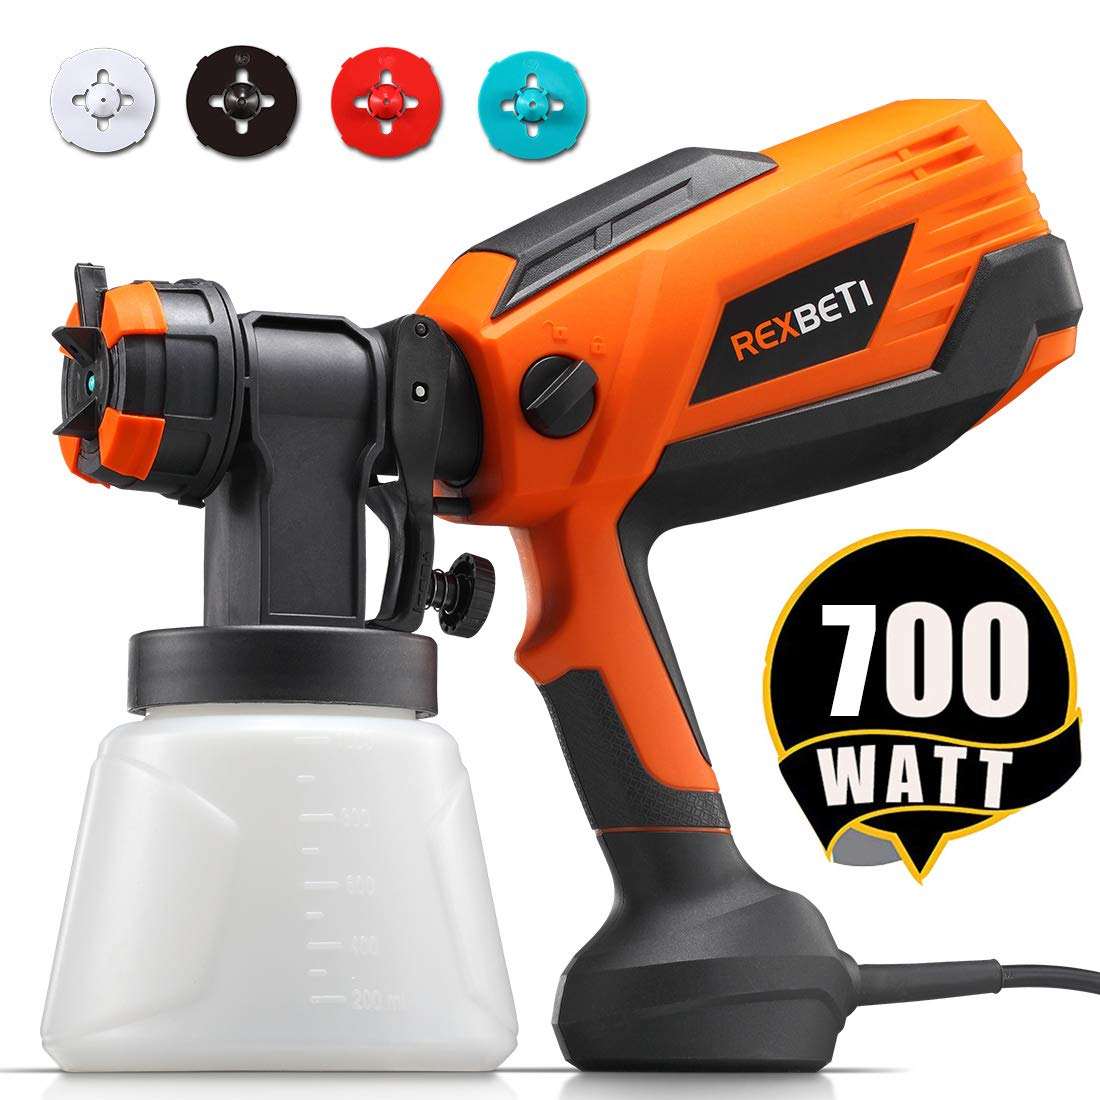 REXBETI 700 Watt High Power Paint Sprayer, 1000ml/min HVLP Home Electric Spray Gun with 1000ml Container, 4 Nozzle Sizes, Easy Spraying and Cleaning, Perfect for Spraying Work